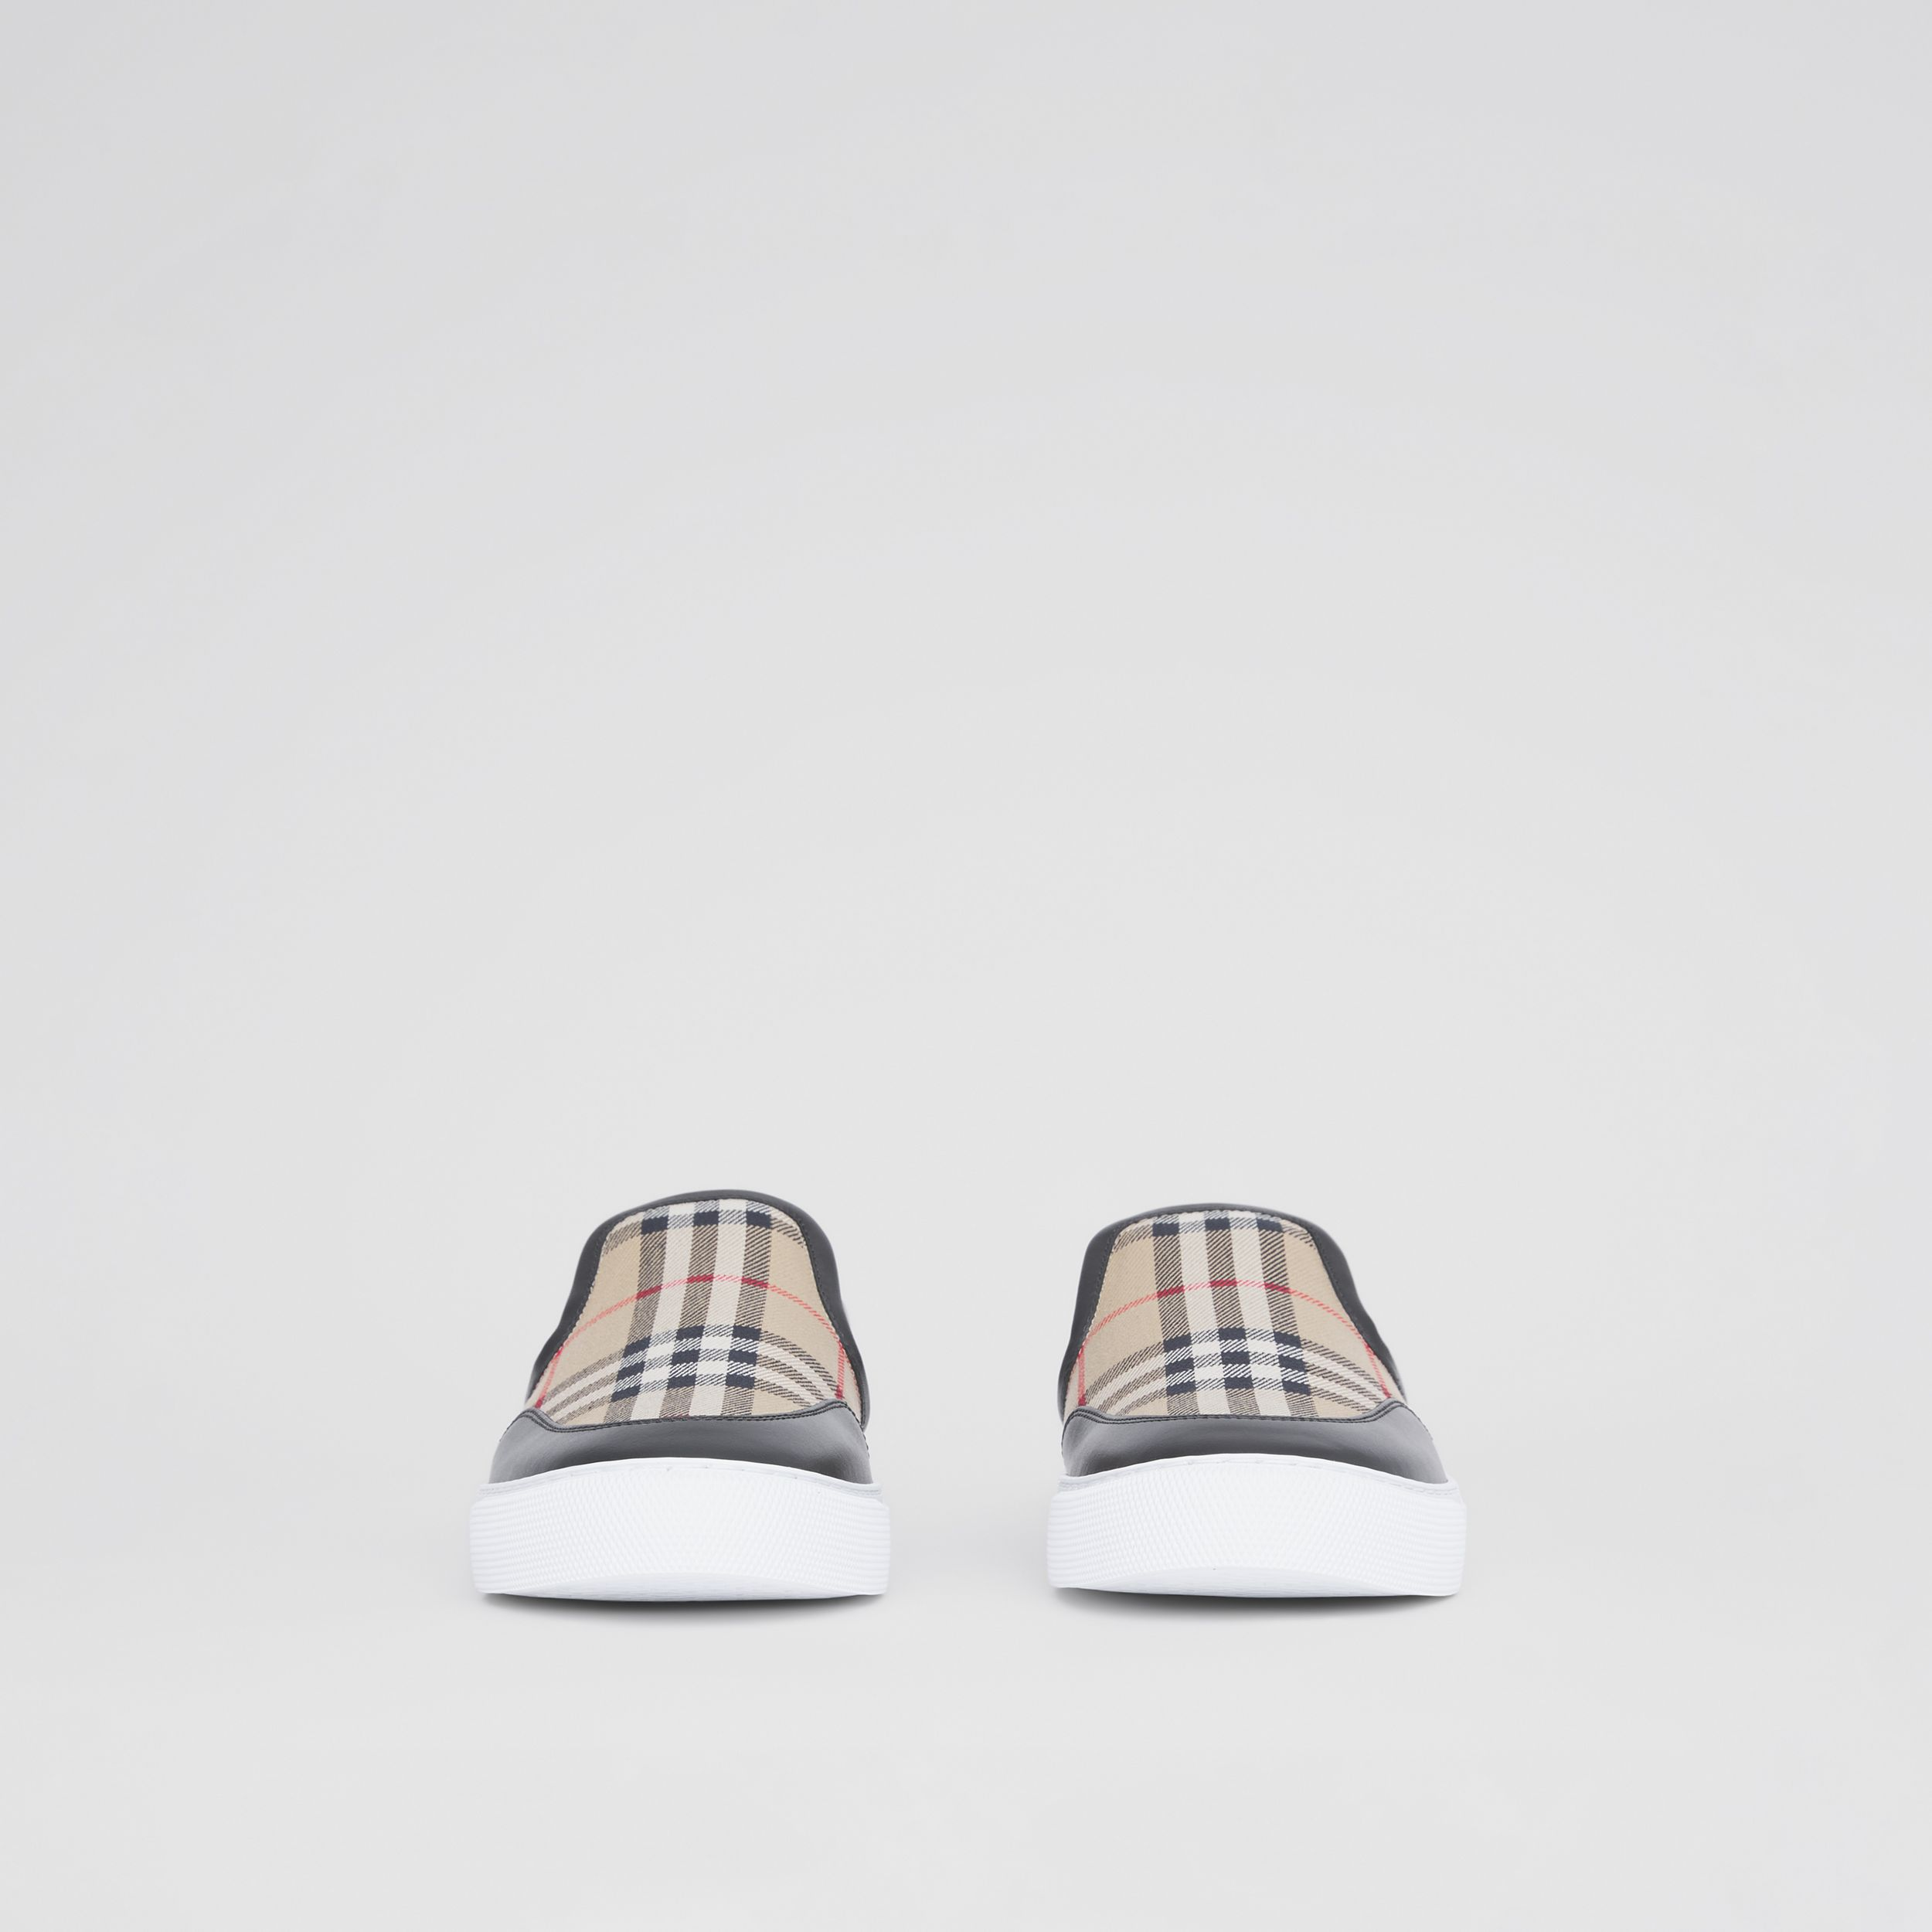 Leather and Vintage Check Slip-on Sneakers in Black - Women | Burberry - 4